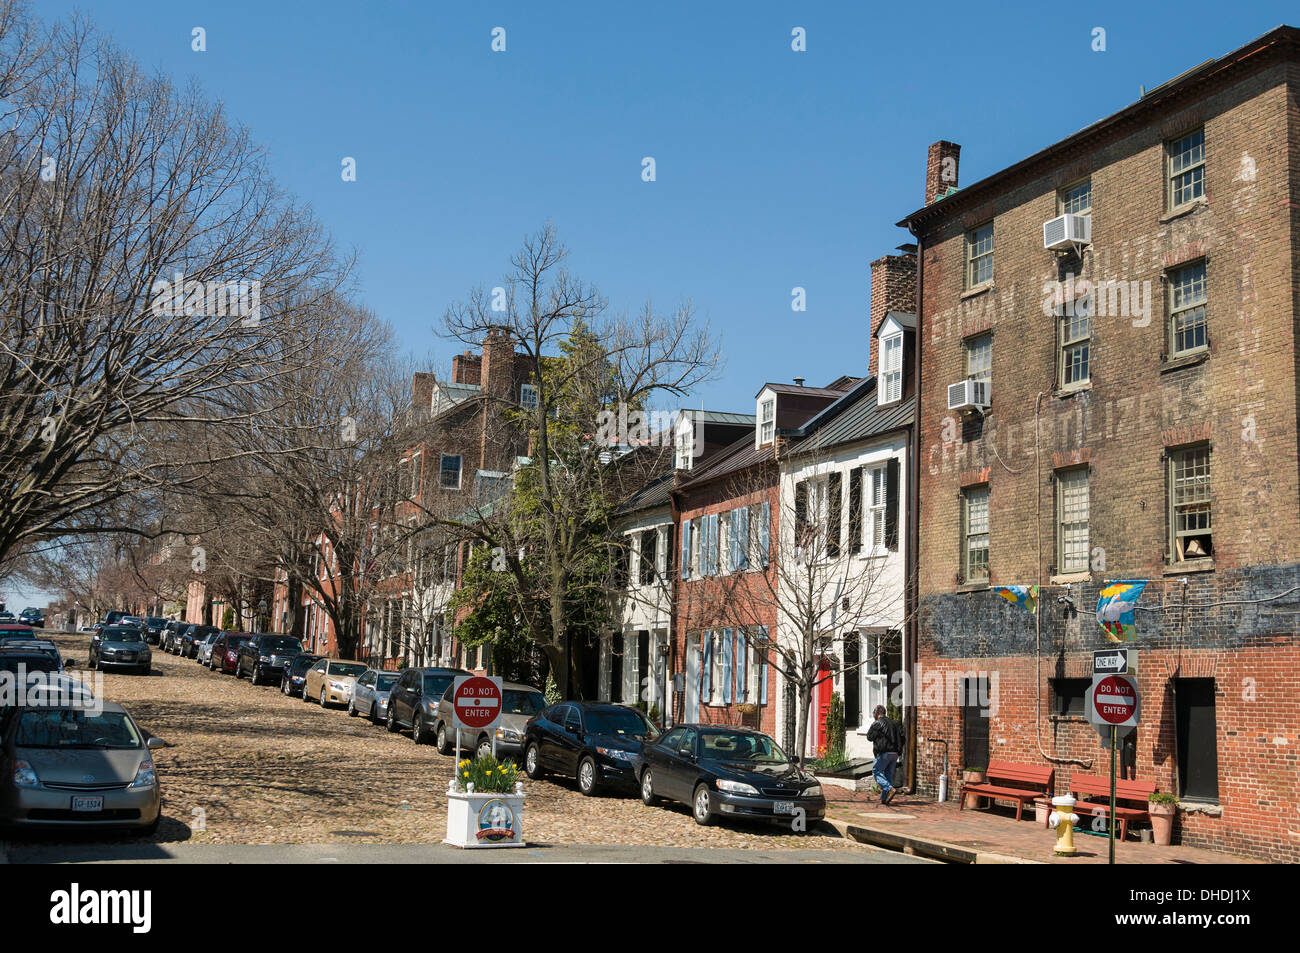 Prince Street also known as Captains Row in Old Town, Alexandria, Virginia, United States of America, North America - Stock Image